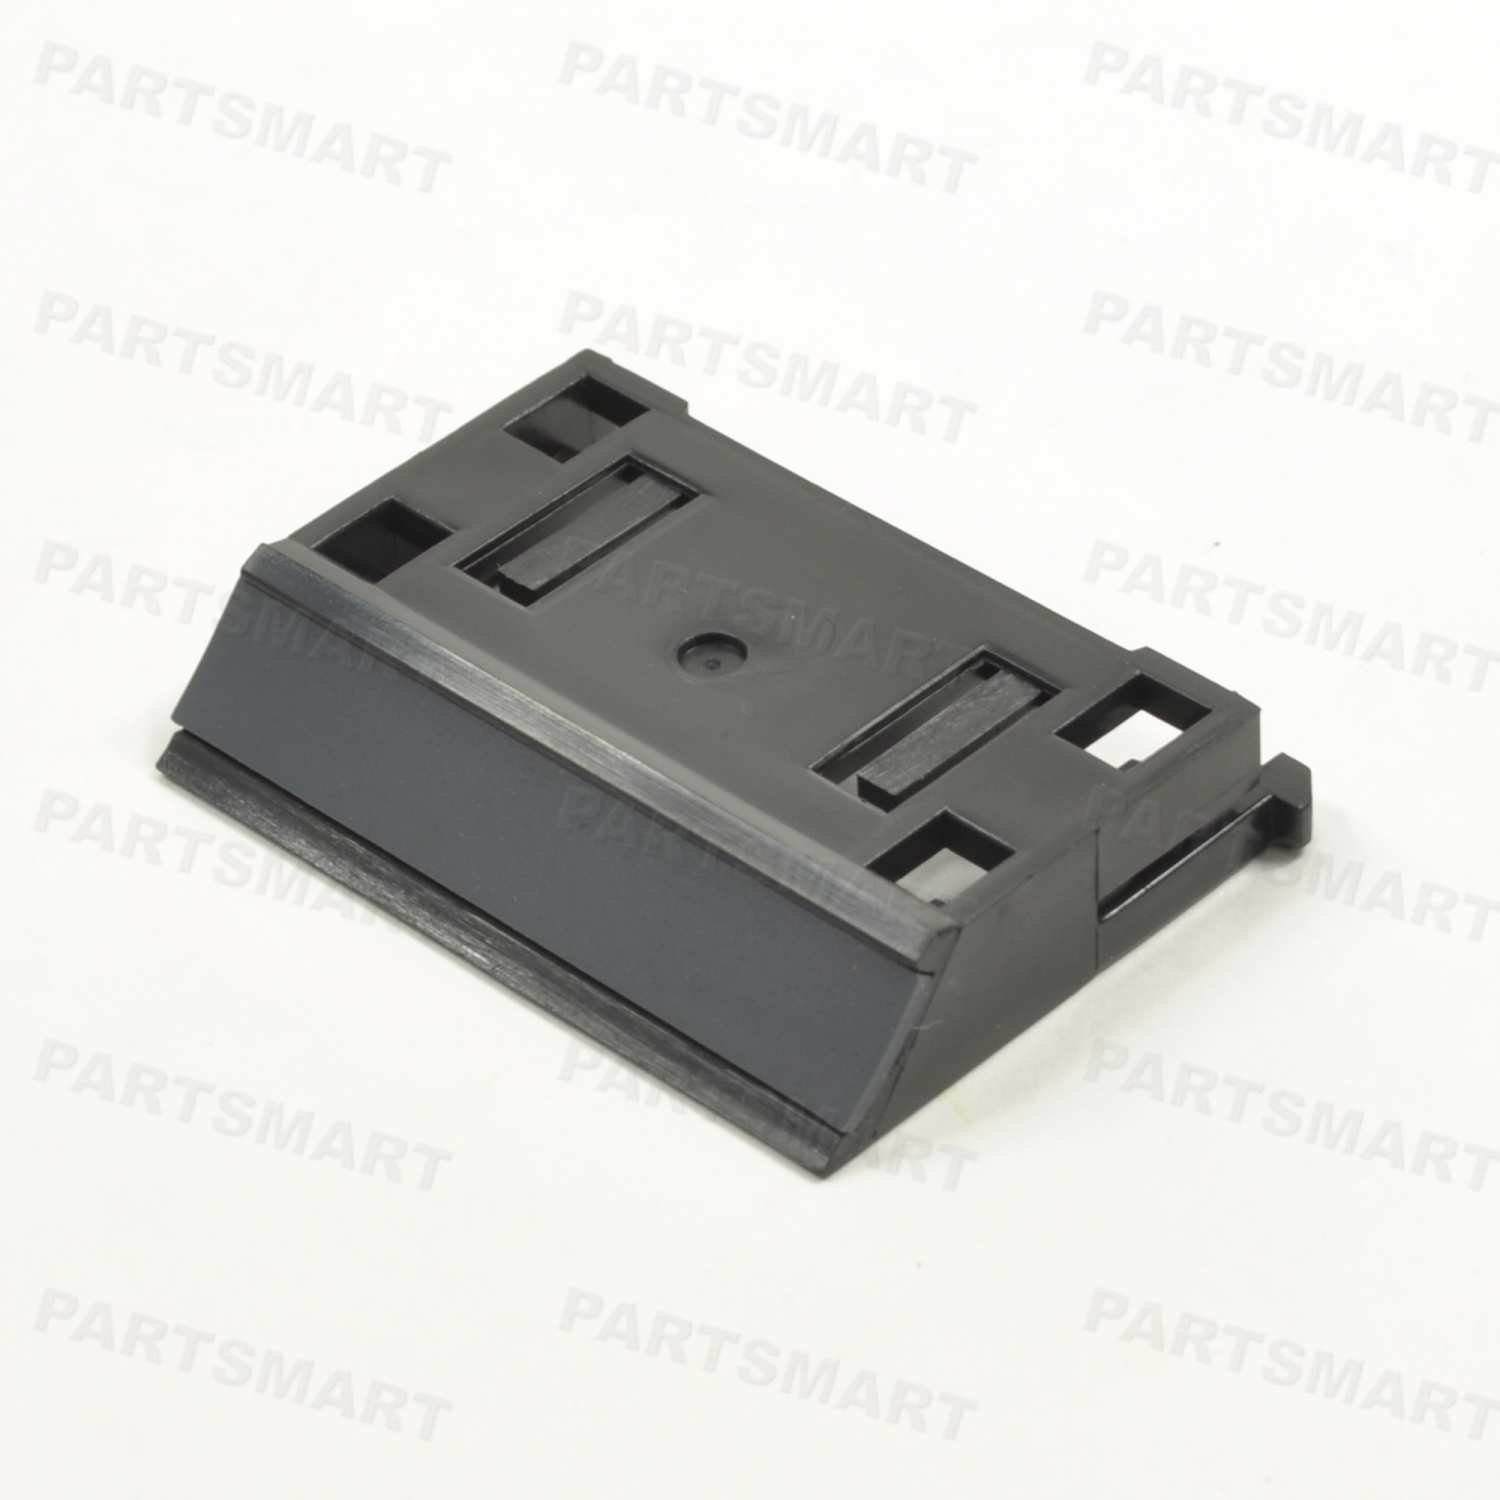 RB2-6349-000 Separation Pad, Tray 2 for HP LaserJet 2100, LaserJet 2200